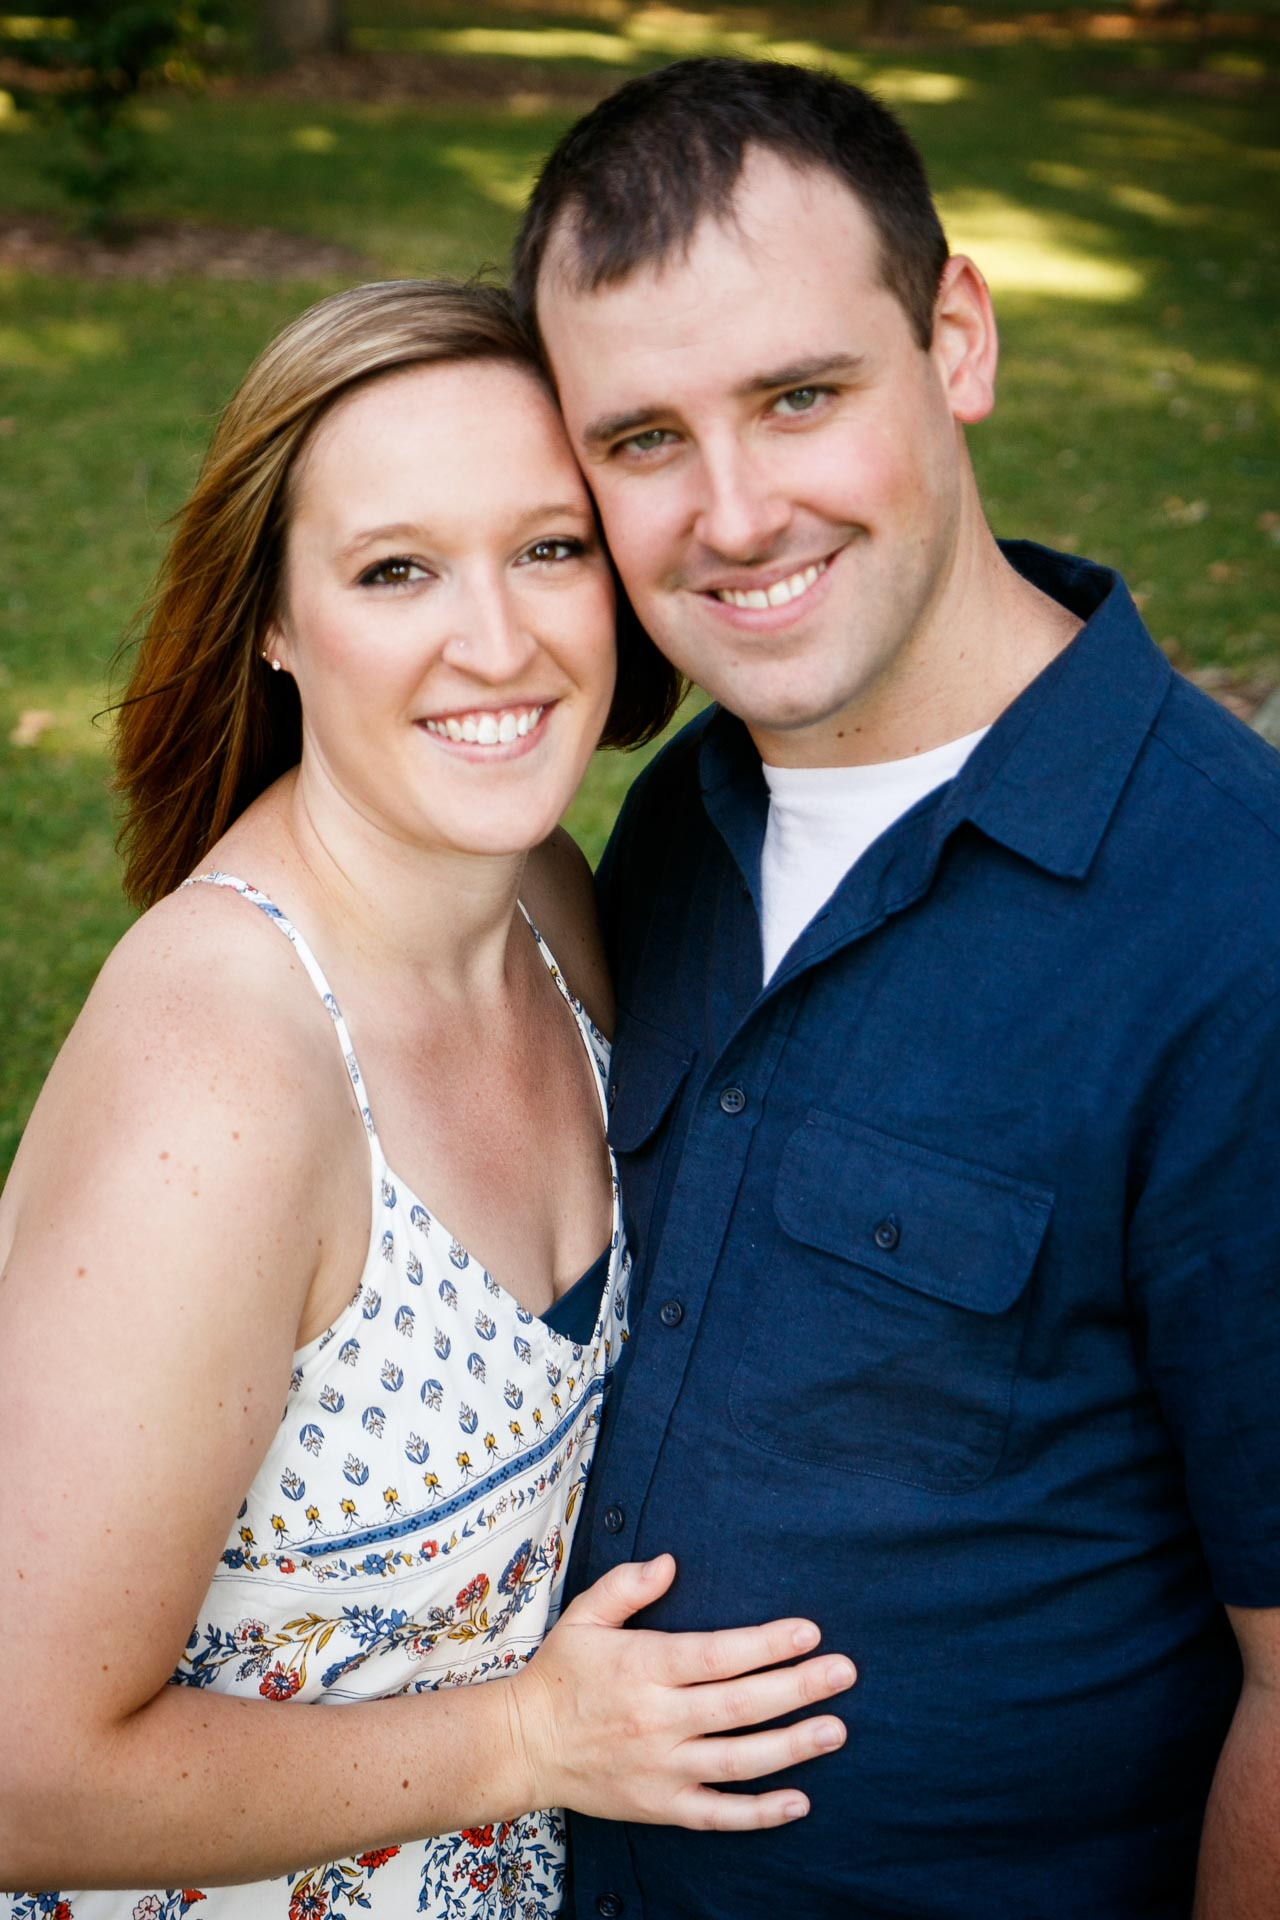 engagement-photos-riverside-park-neenah-adam-shea-photography-green-bay-appleton-neenah-photographer-3.jpg